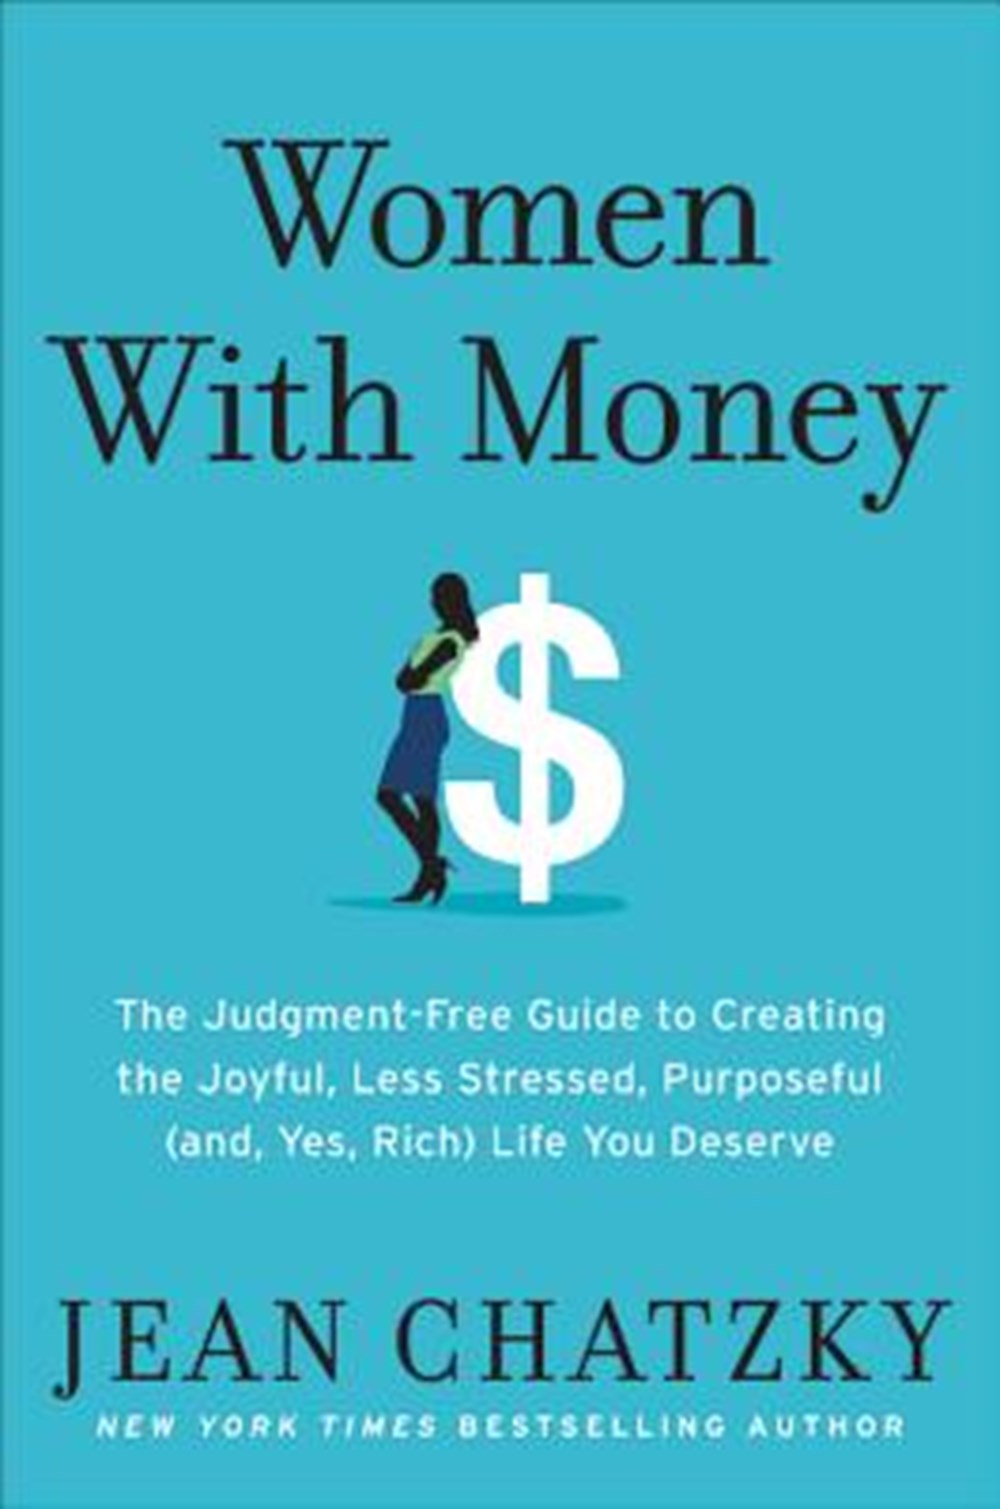 Women with Money The Judgment-Free Guide to Creating the Joyful, Less Stressed, Purposeful (And, Yes